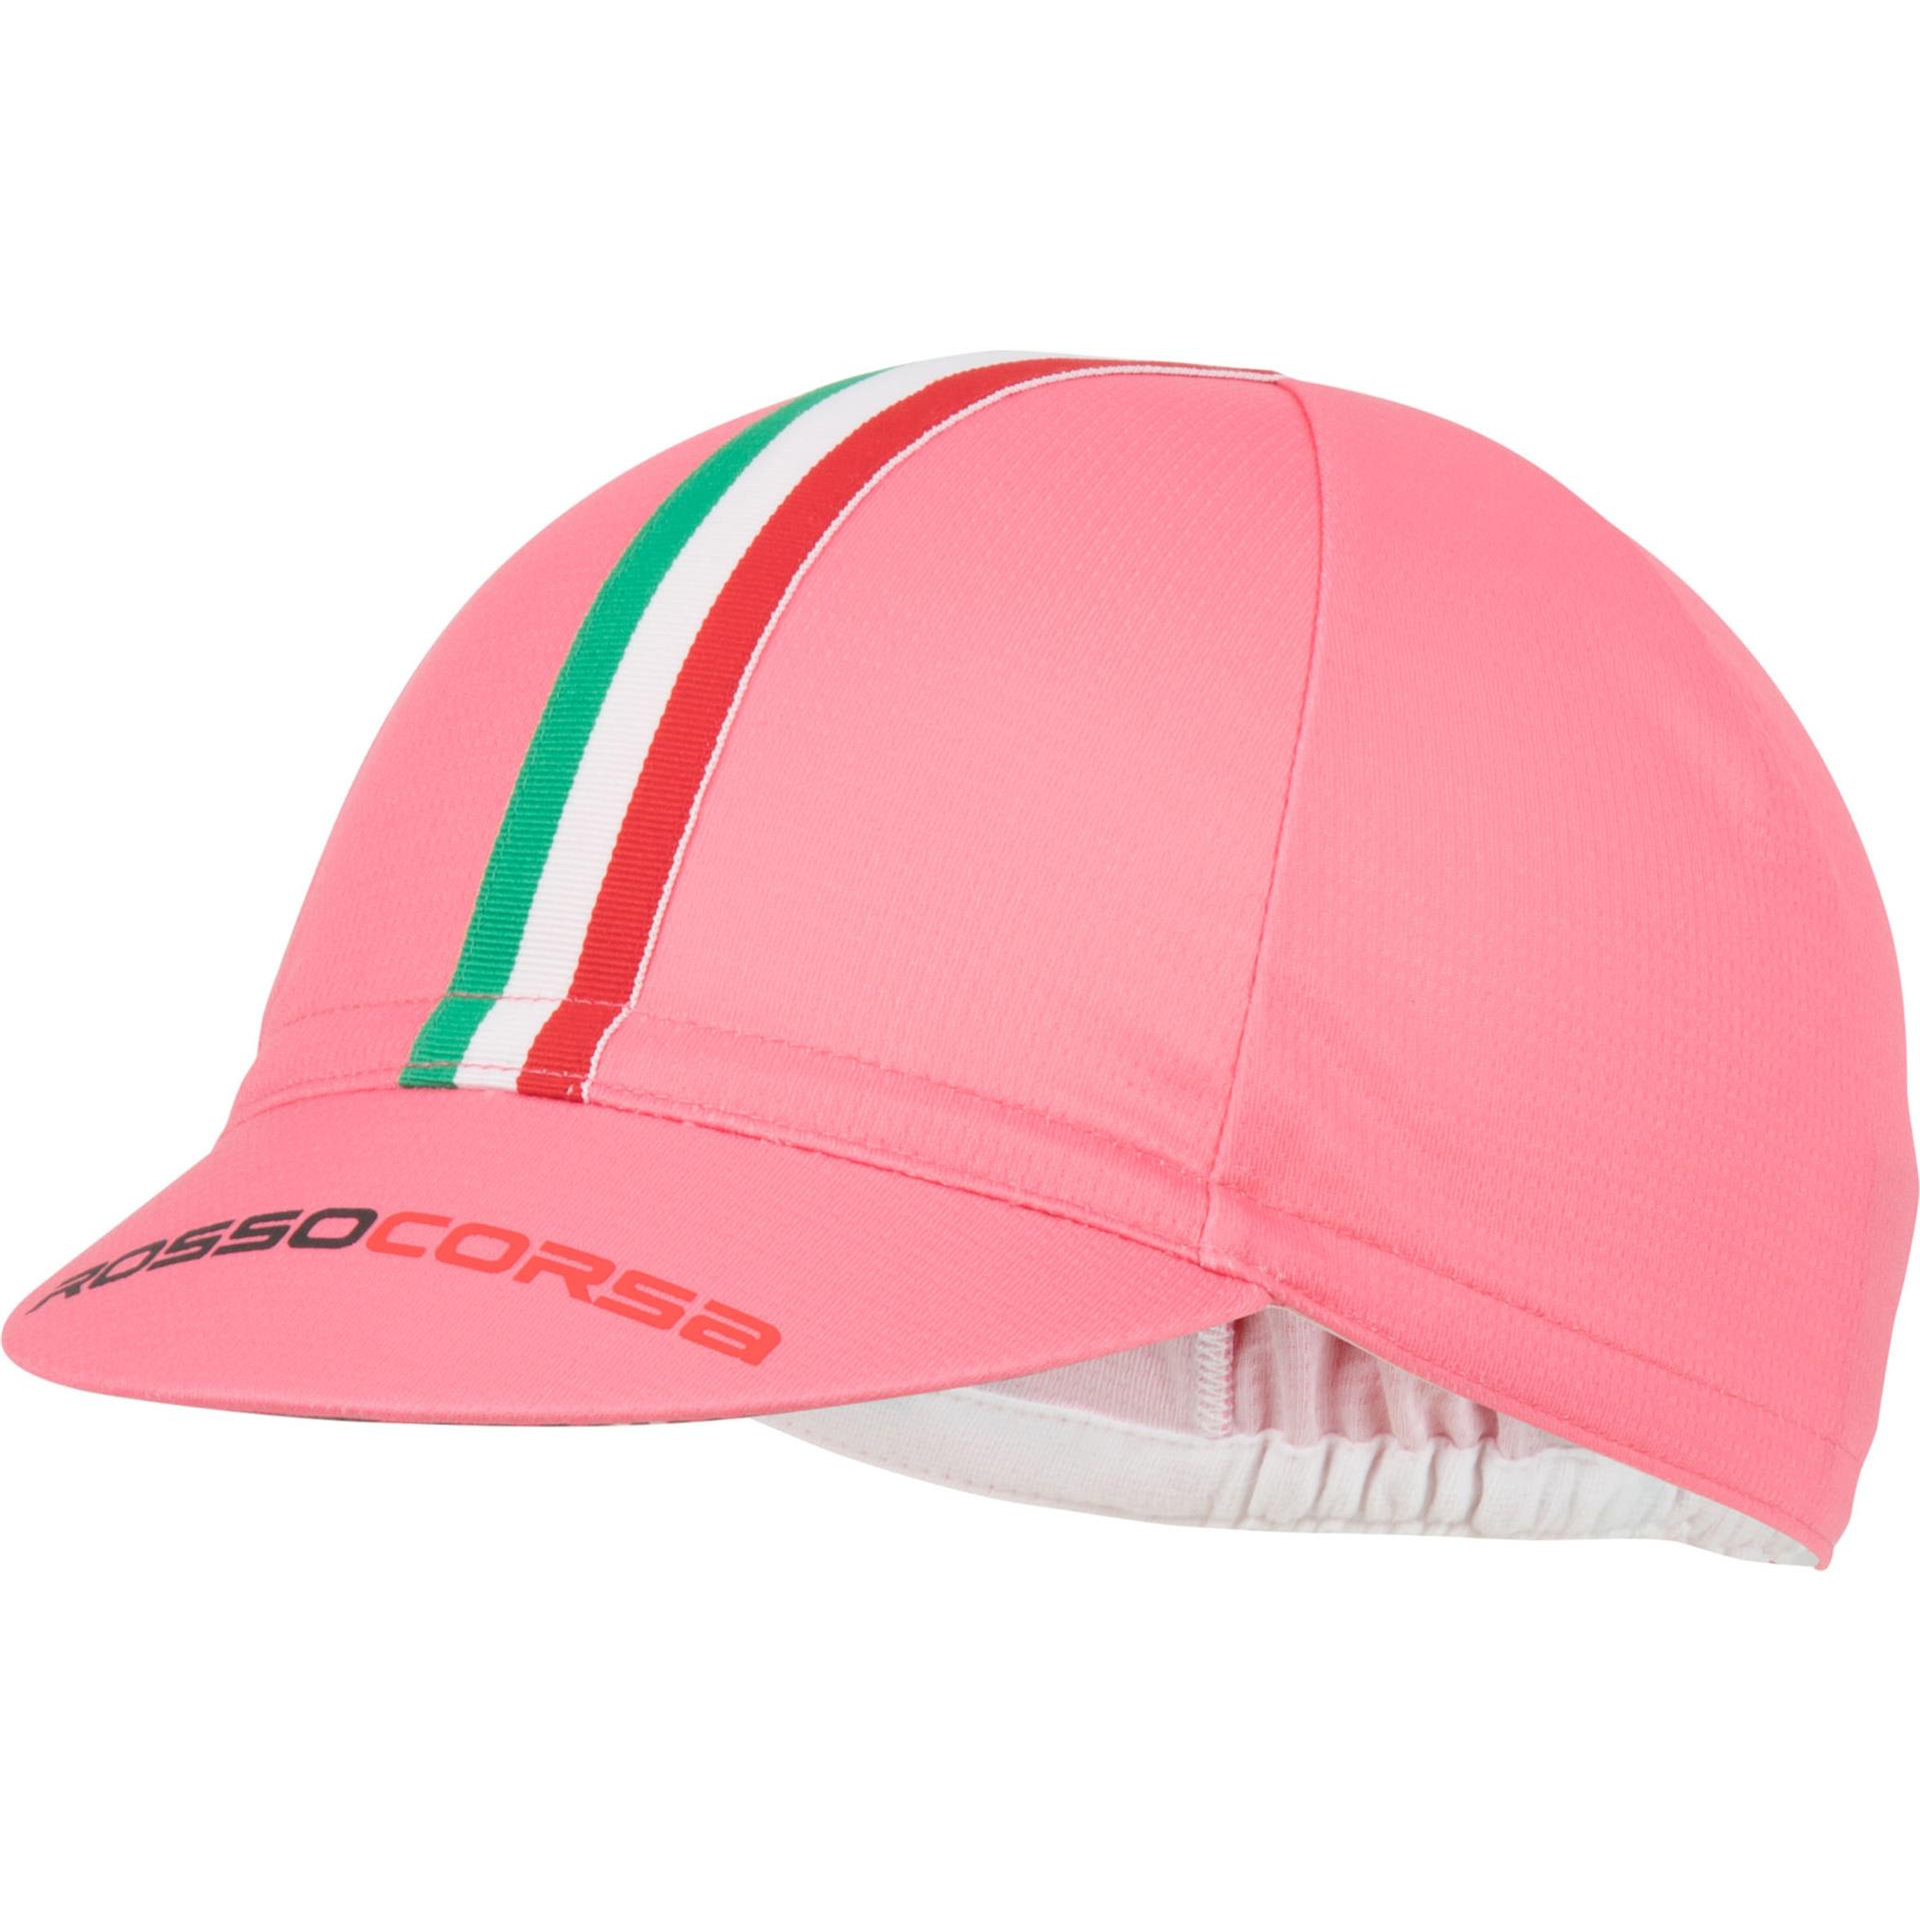 Castelli Rosso Corsa Cycling Cap - SS19